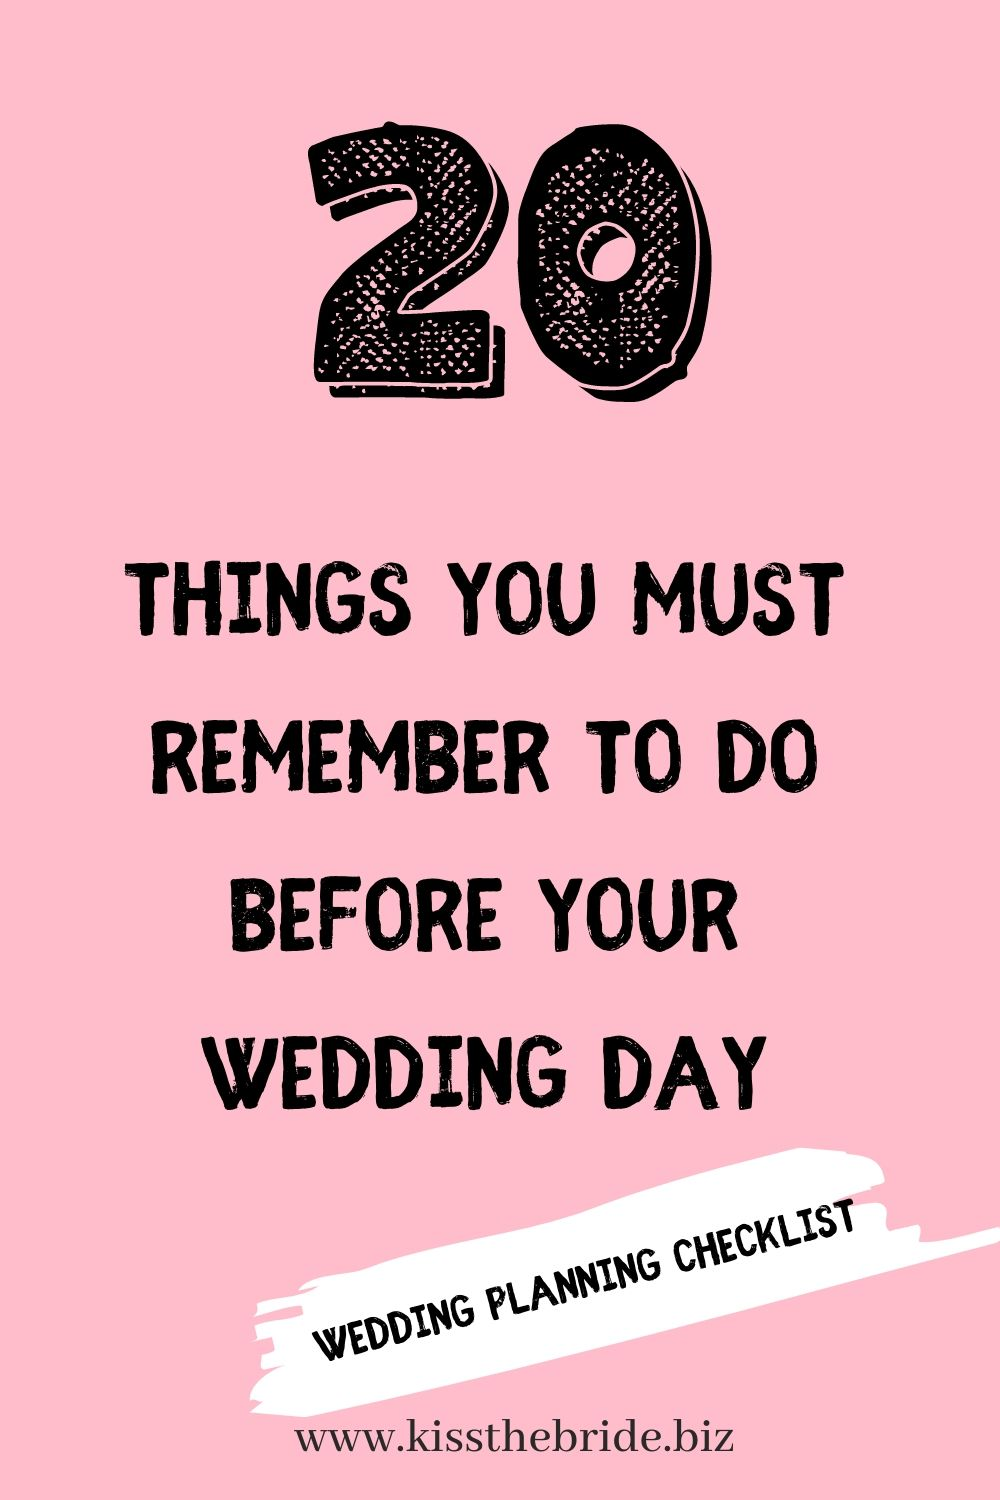 20 wedding details you may forget while planning your big day